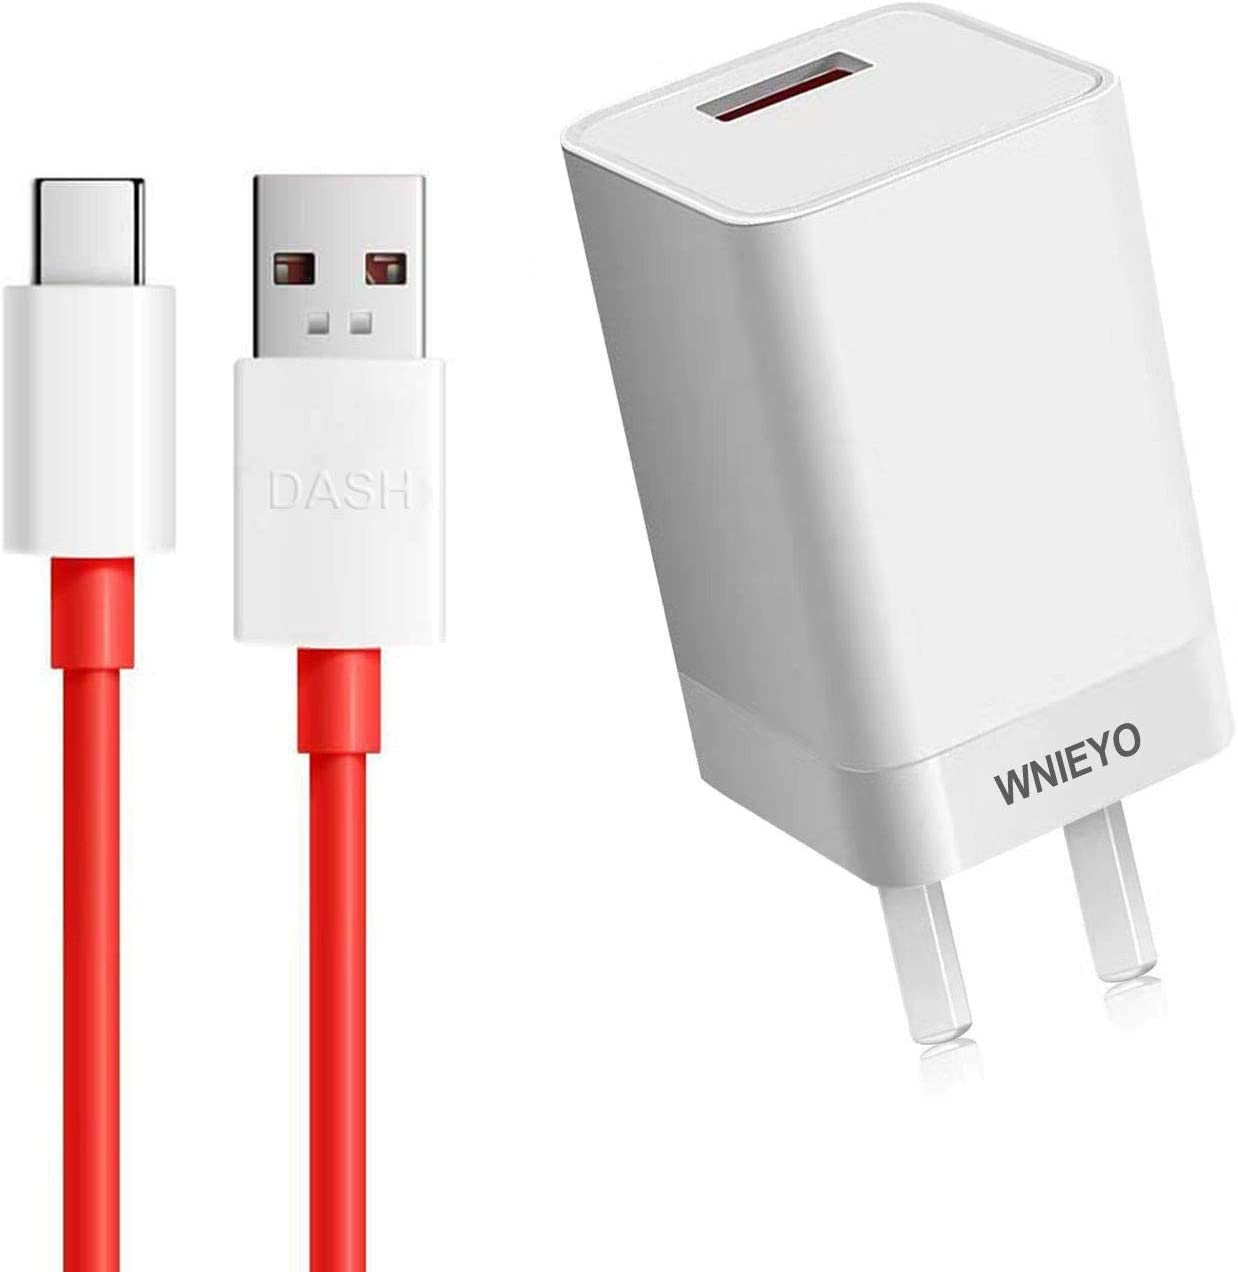 WNIEYO Dash Charger, OnePlus 6T / 6 Charger [5V 4A] + Dash Charging Cable 3.3FT USB C for Quickly Charge of OnePlus 6T / 6 / 5T / 5 / 3T / 3